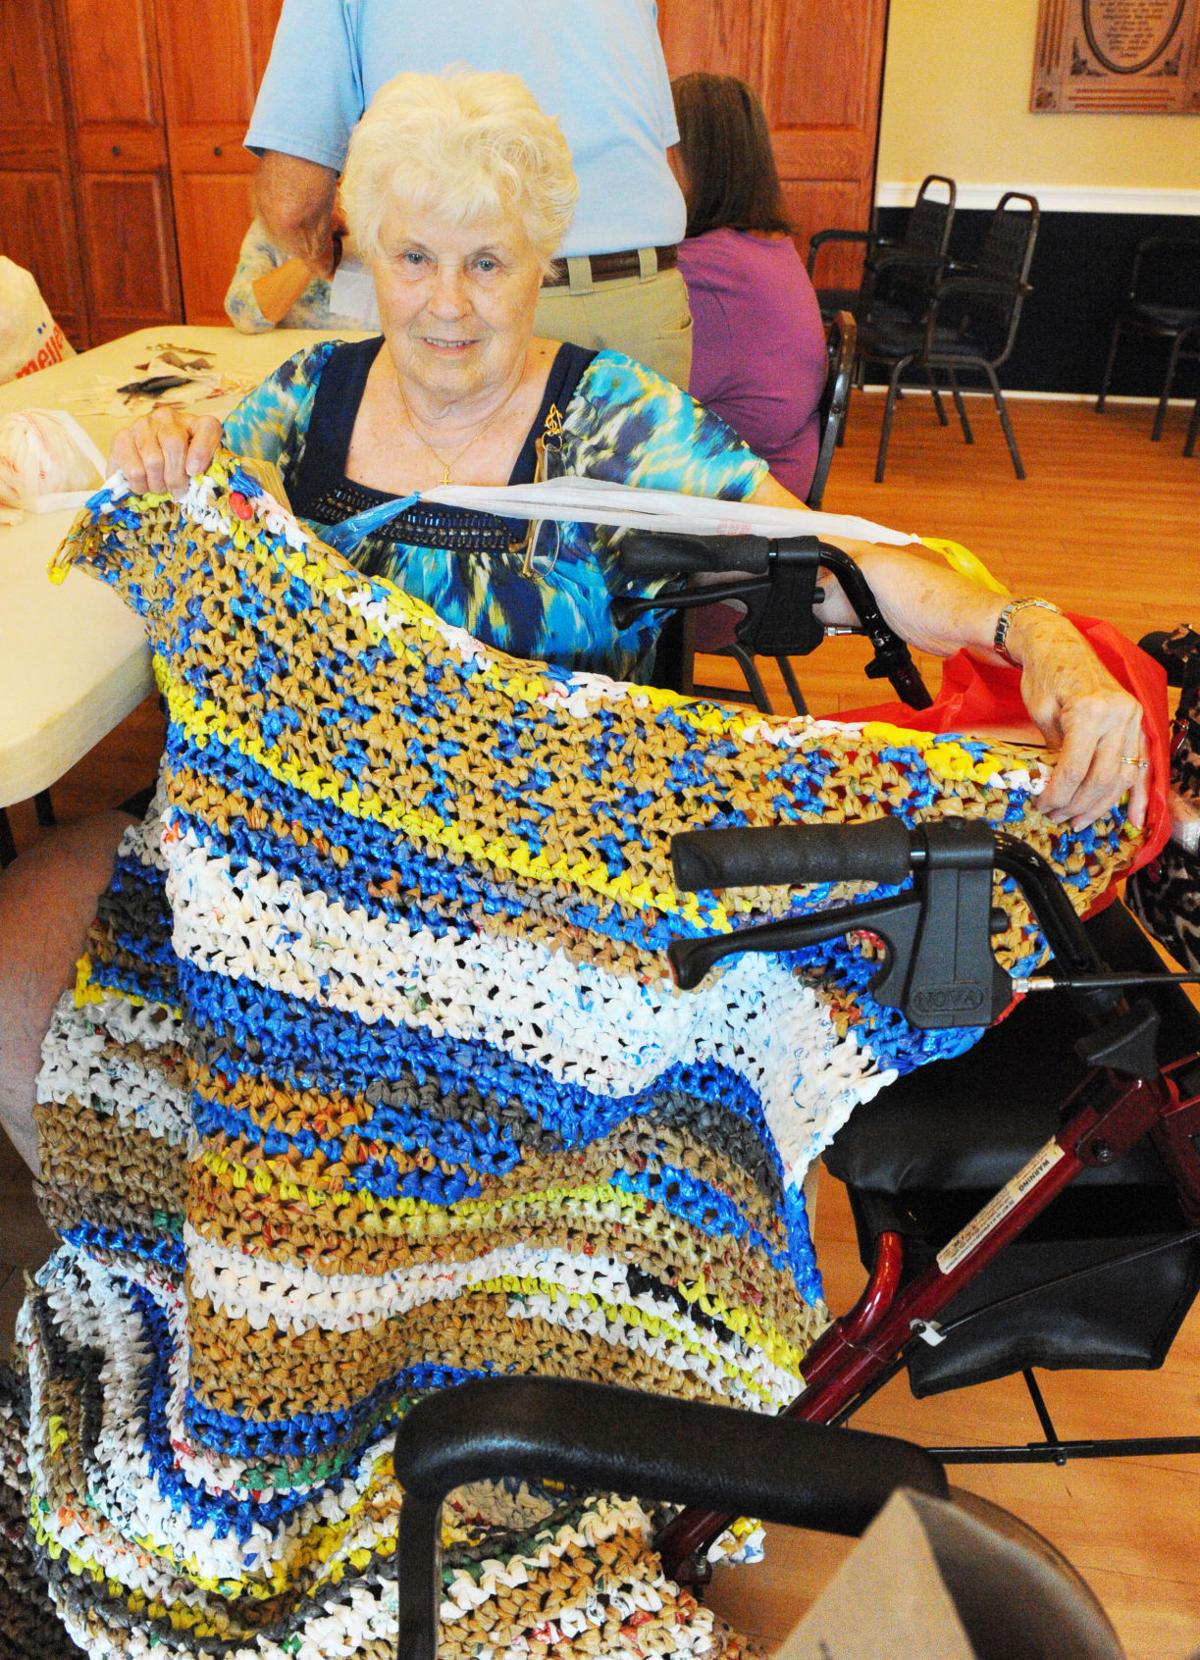 New Life For Old Bags Project To Create Sleeping Mats Homeless Vets Really Takes Off